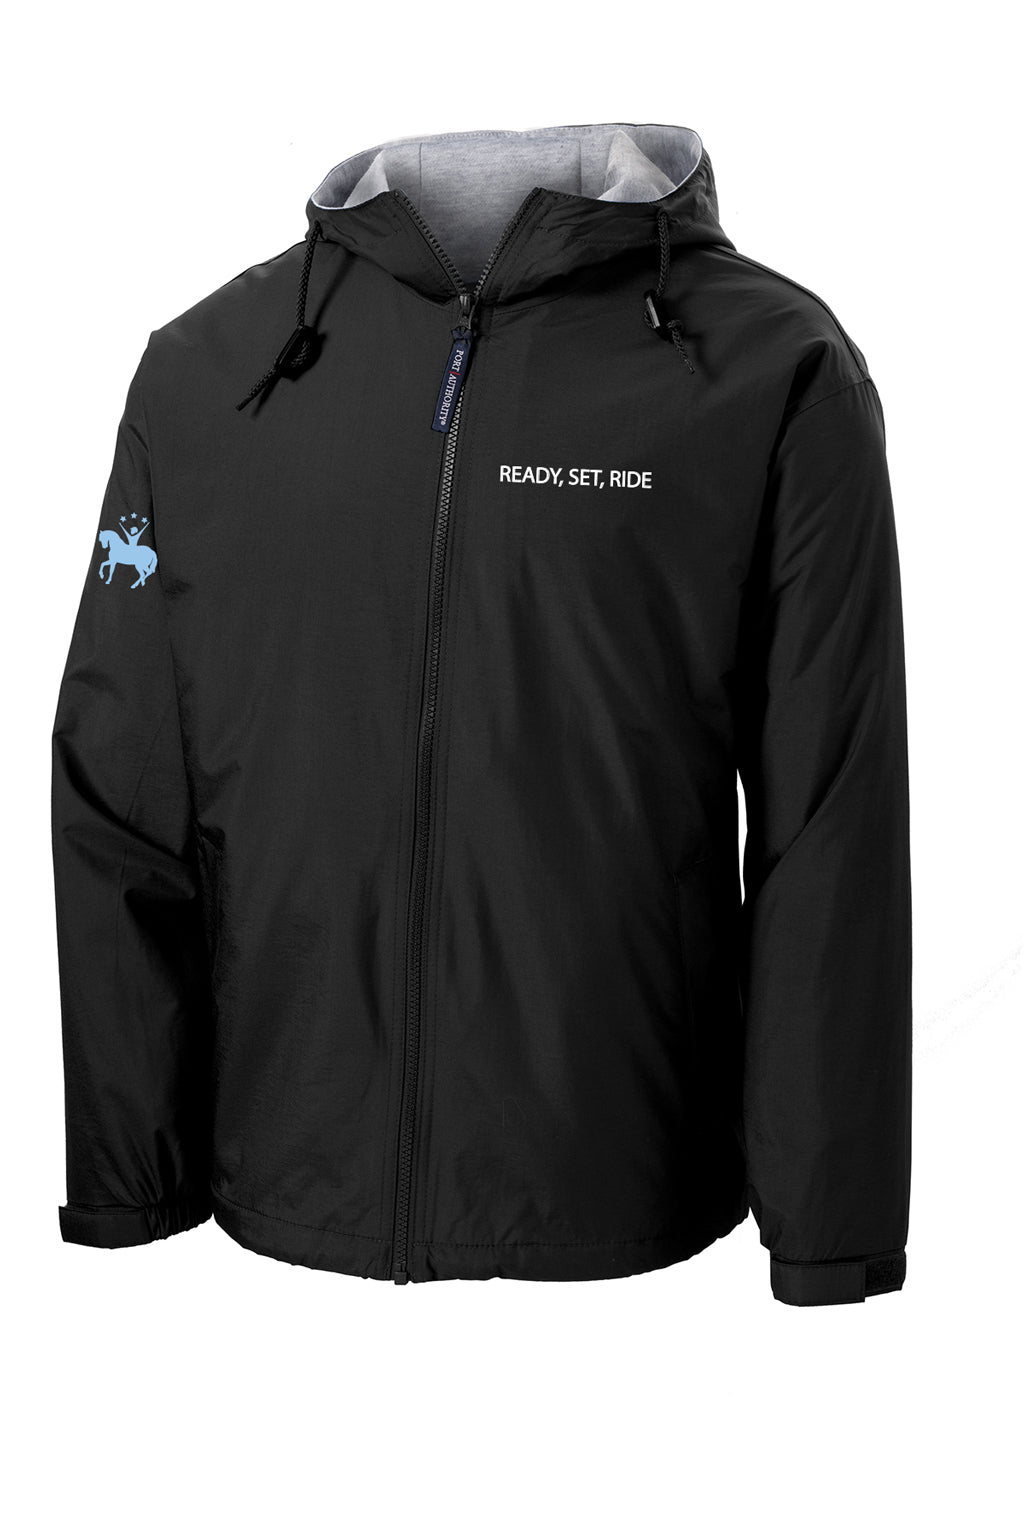 Ready Set Ride Team Spectator Jacket